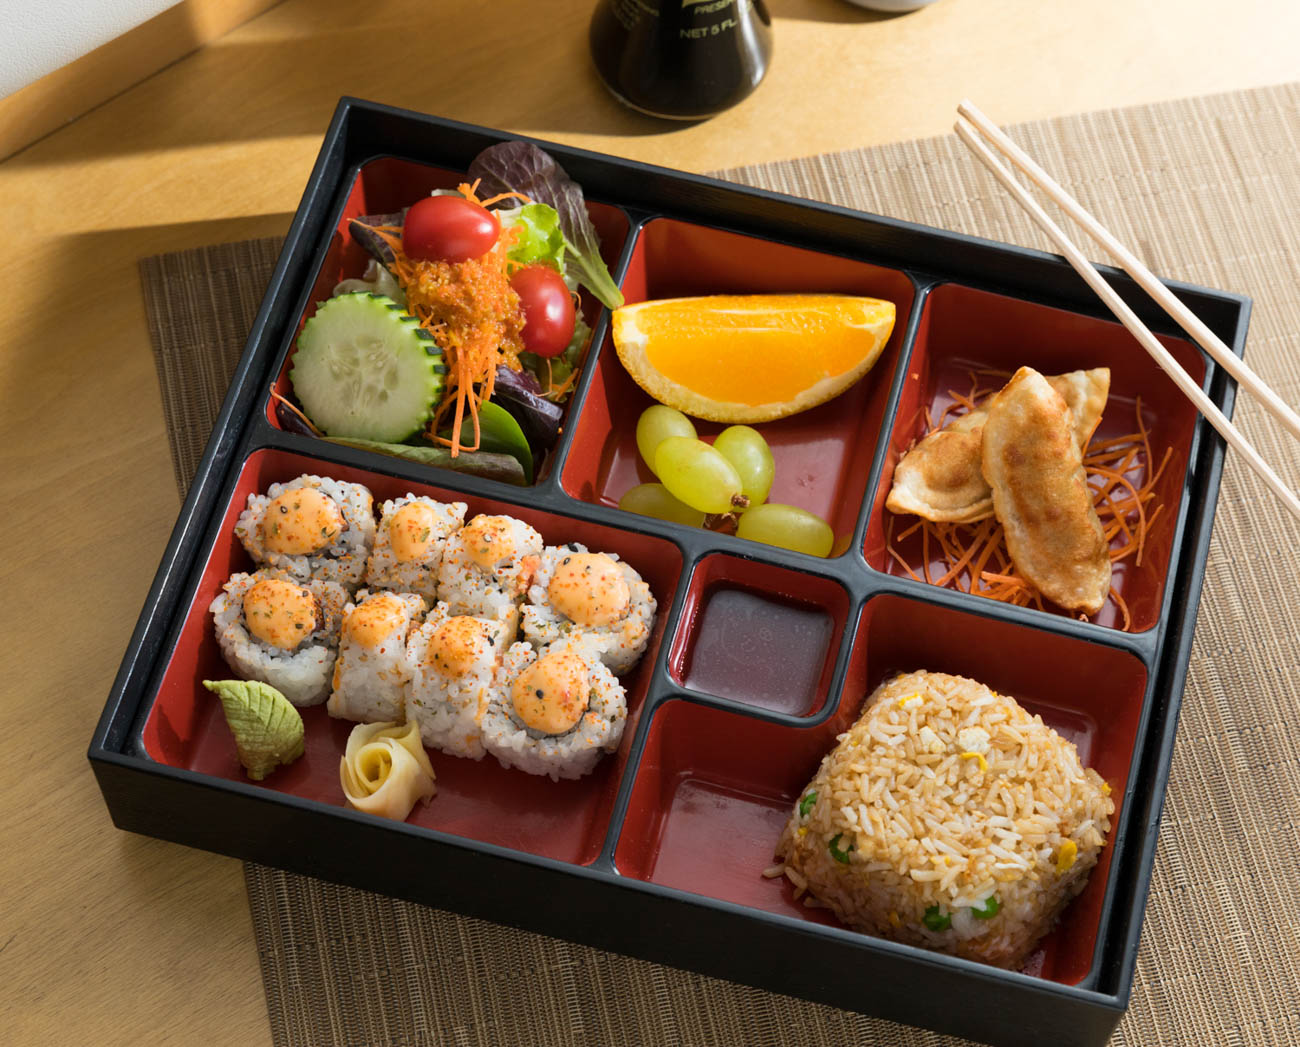 Lunch special bento box with spicy California roll{ }/ Image: Marlene Rounds // Published: 1.17.19